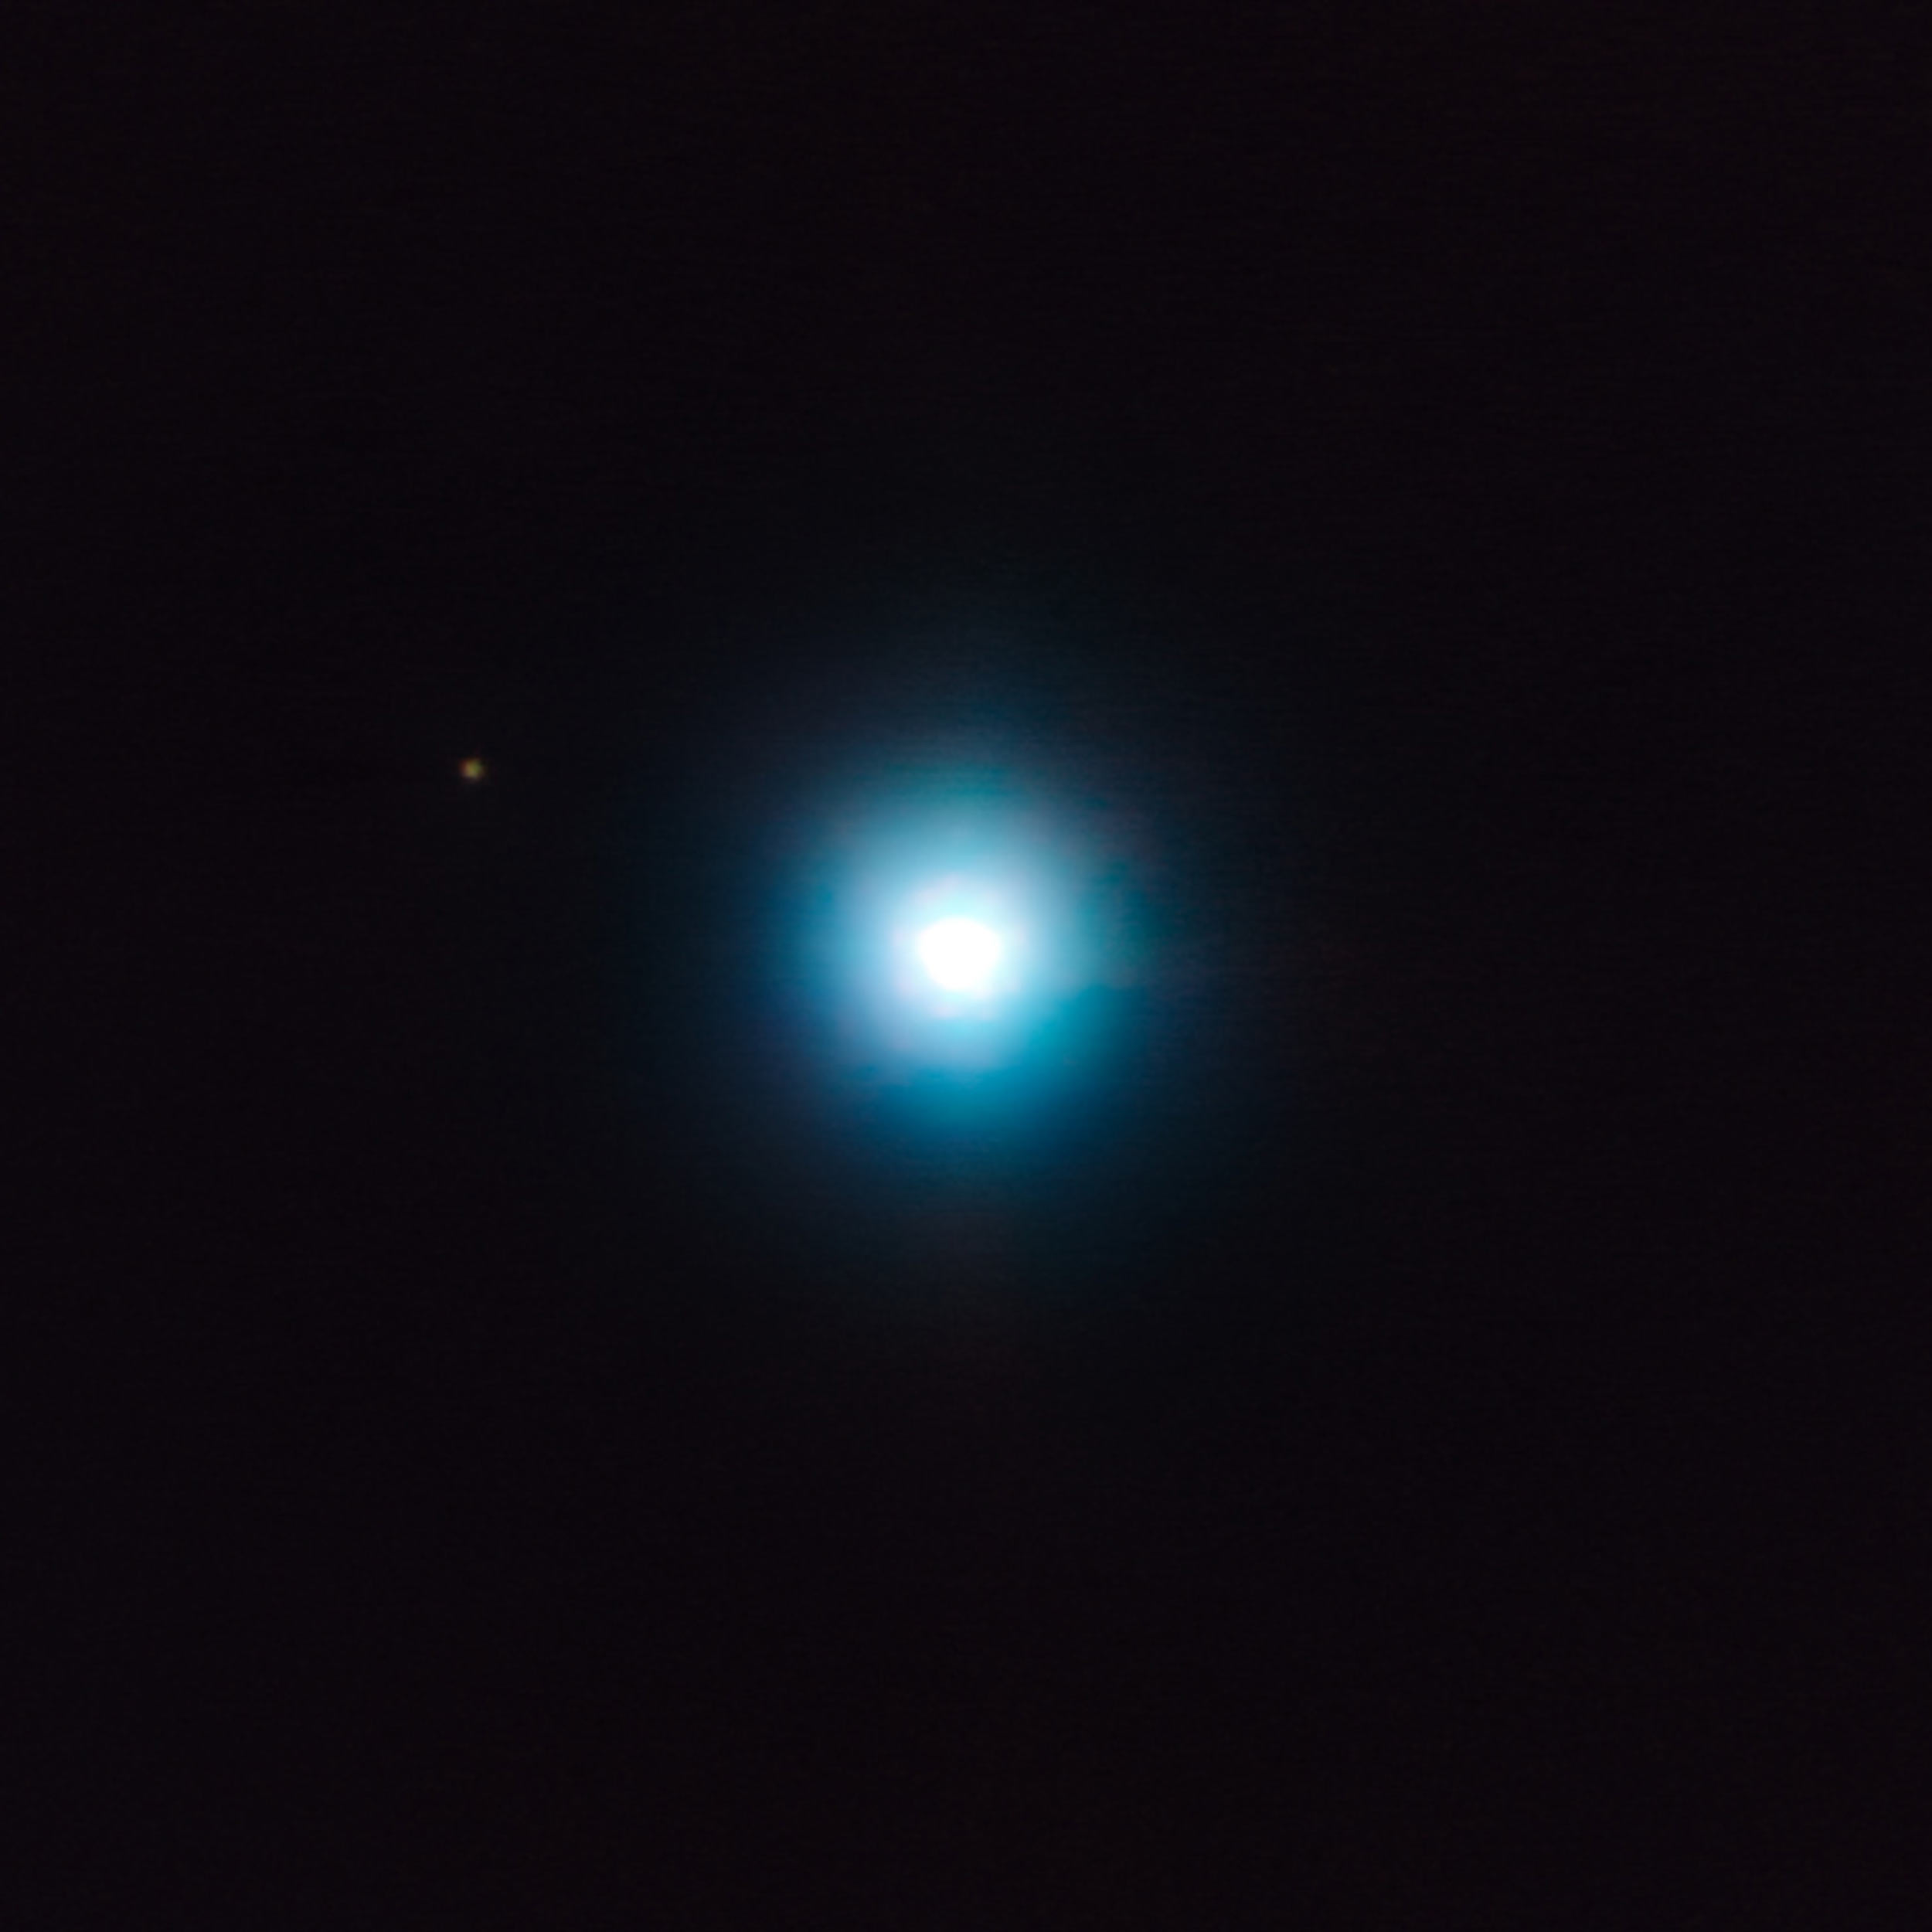 Astronomers Snap Picture Of Giant Exoplanet 1 200 Light